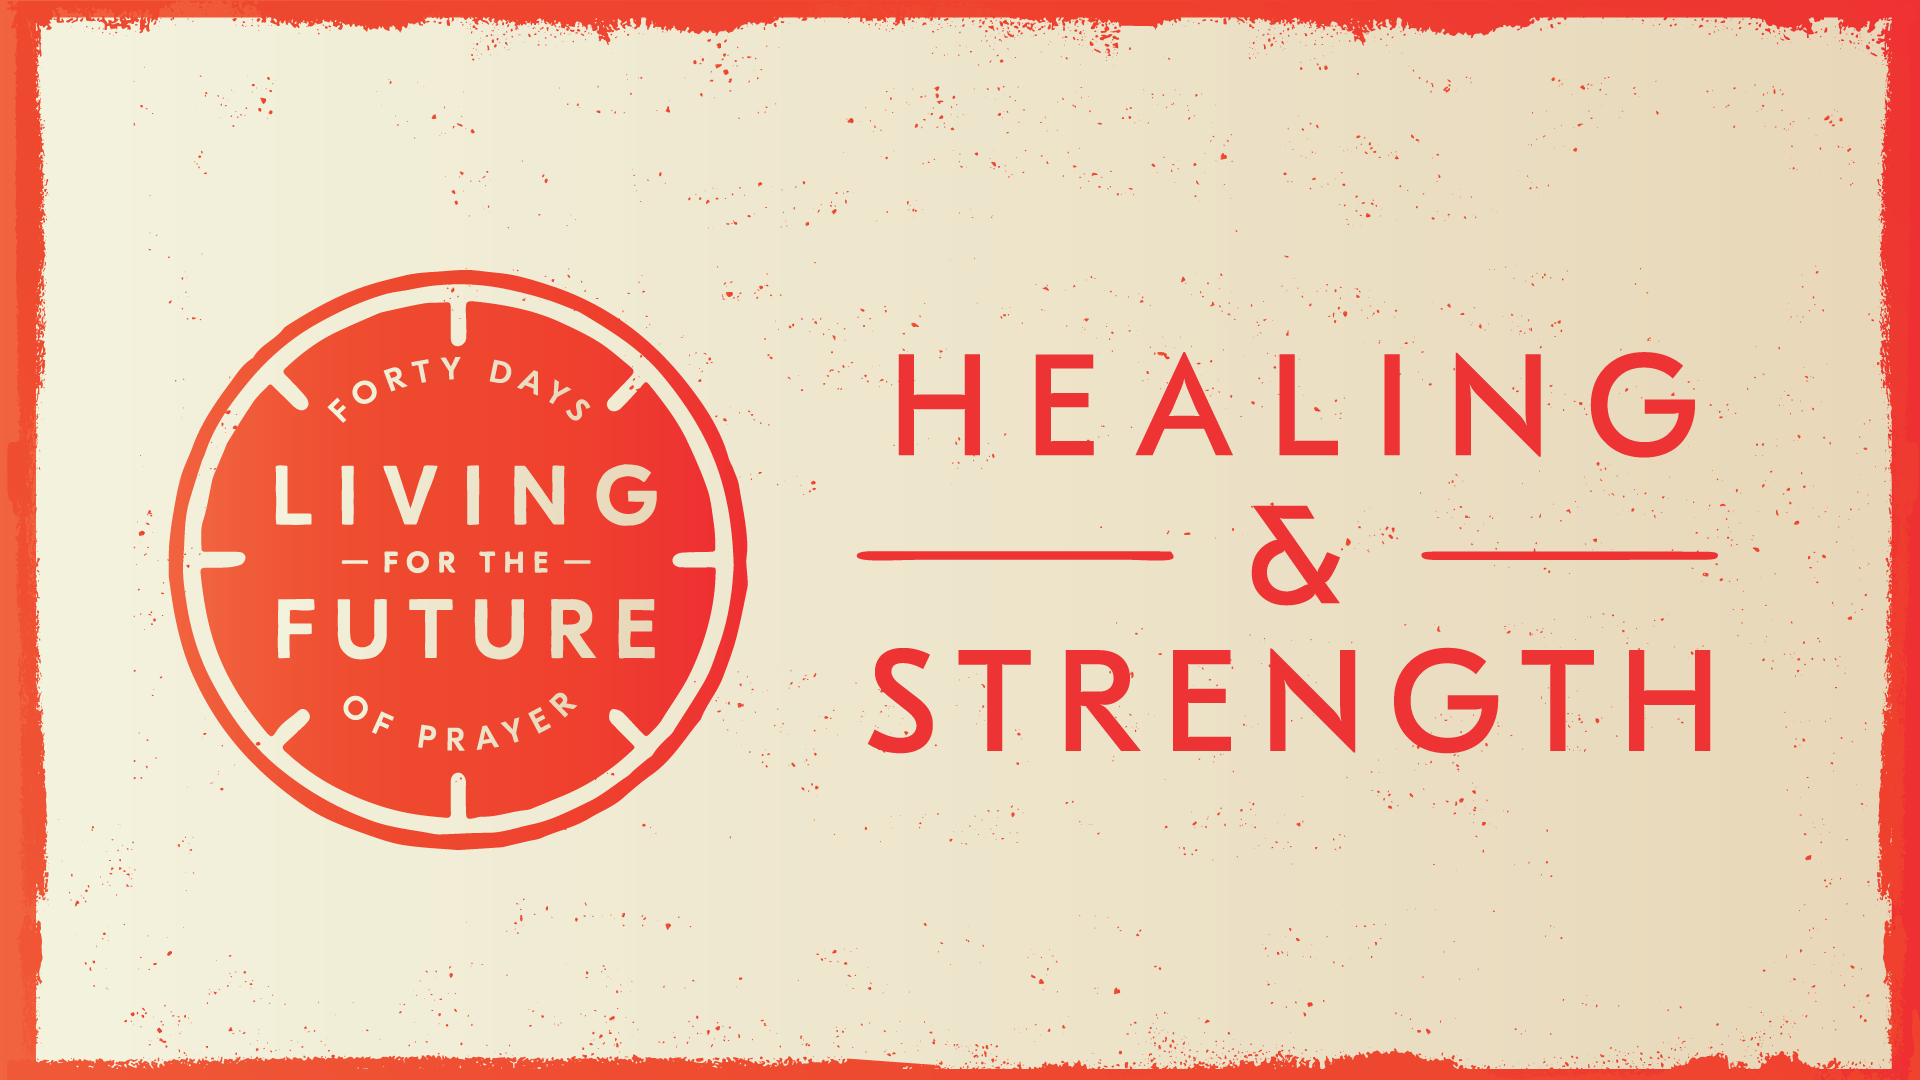 40 Days Of Prayer: Healing & Strength    November 28th, 2018